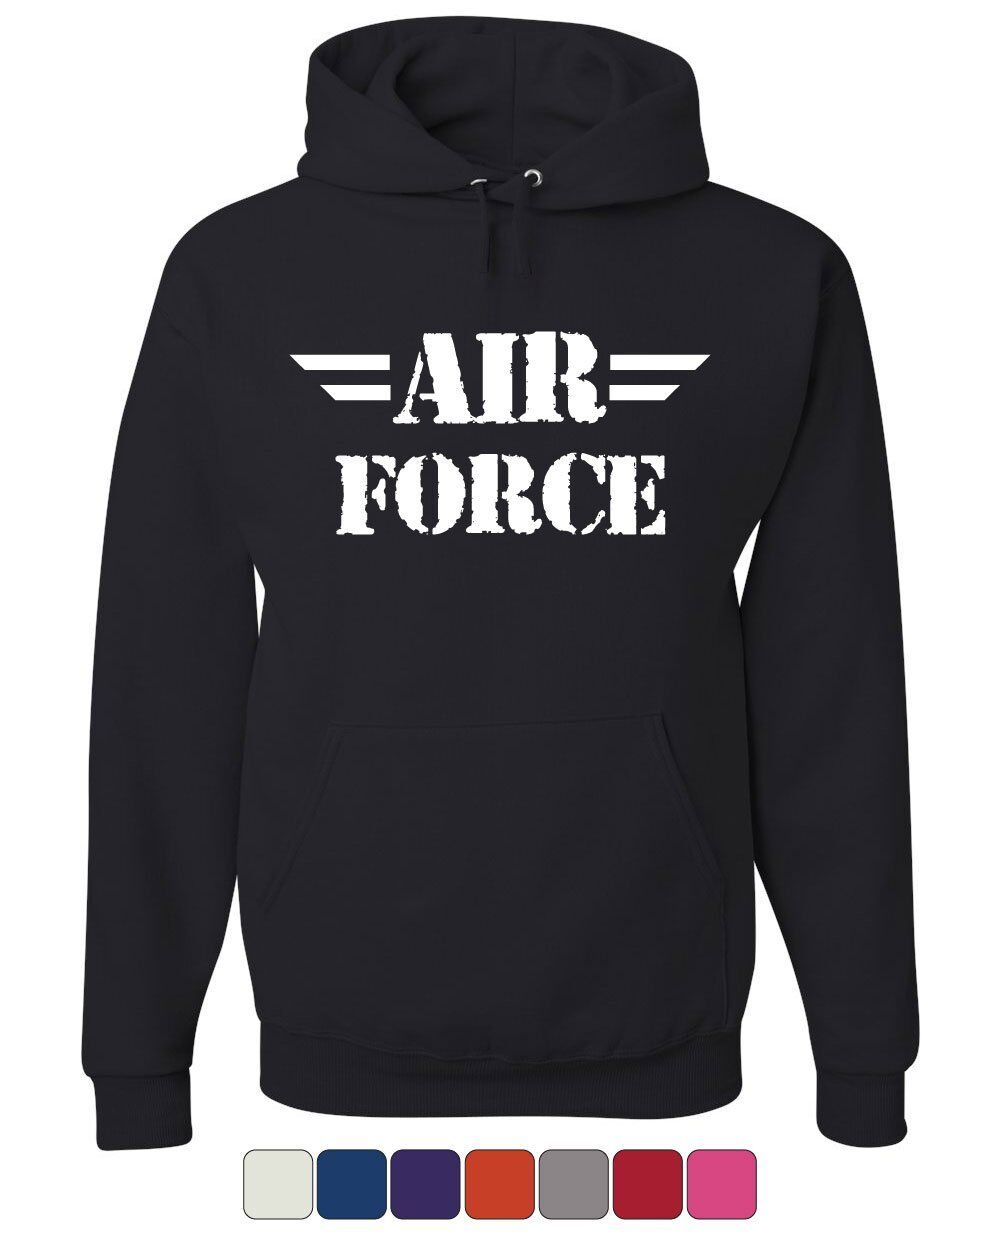 Air Force Hoodie Military Veteran POW MIA Air Force Mom Sweatshirt